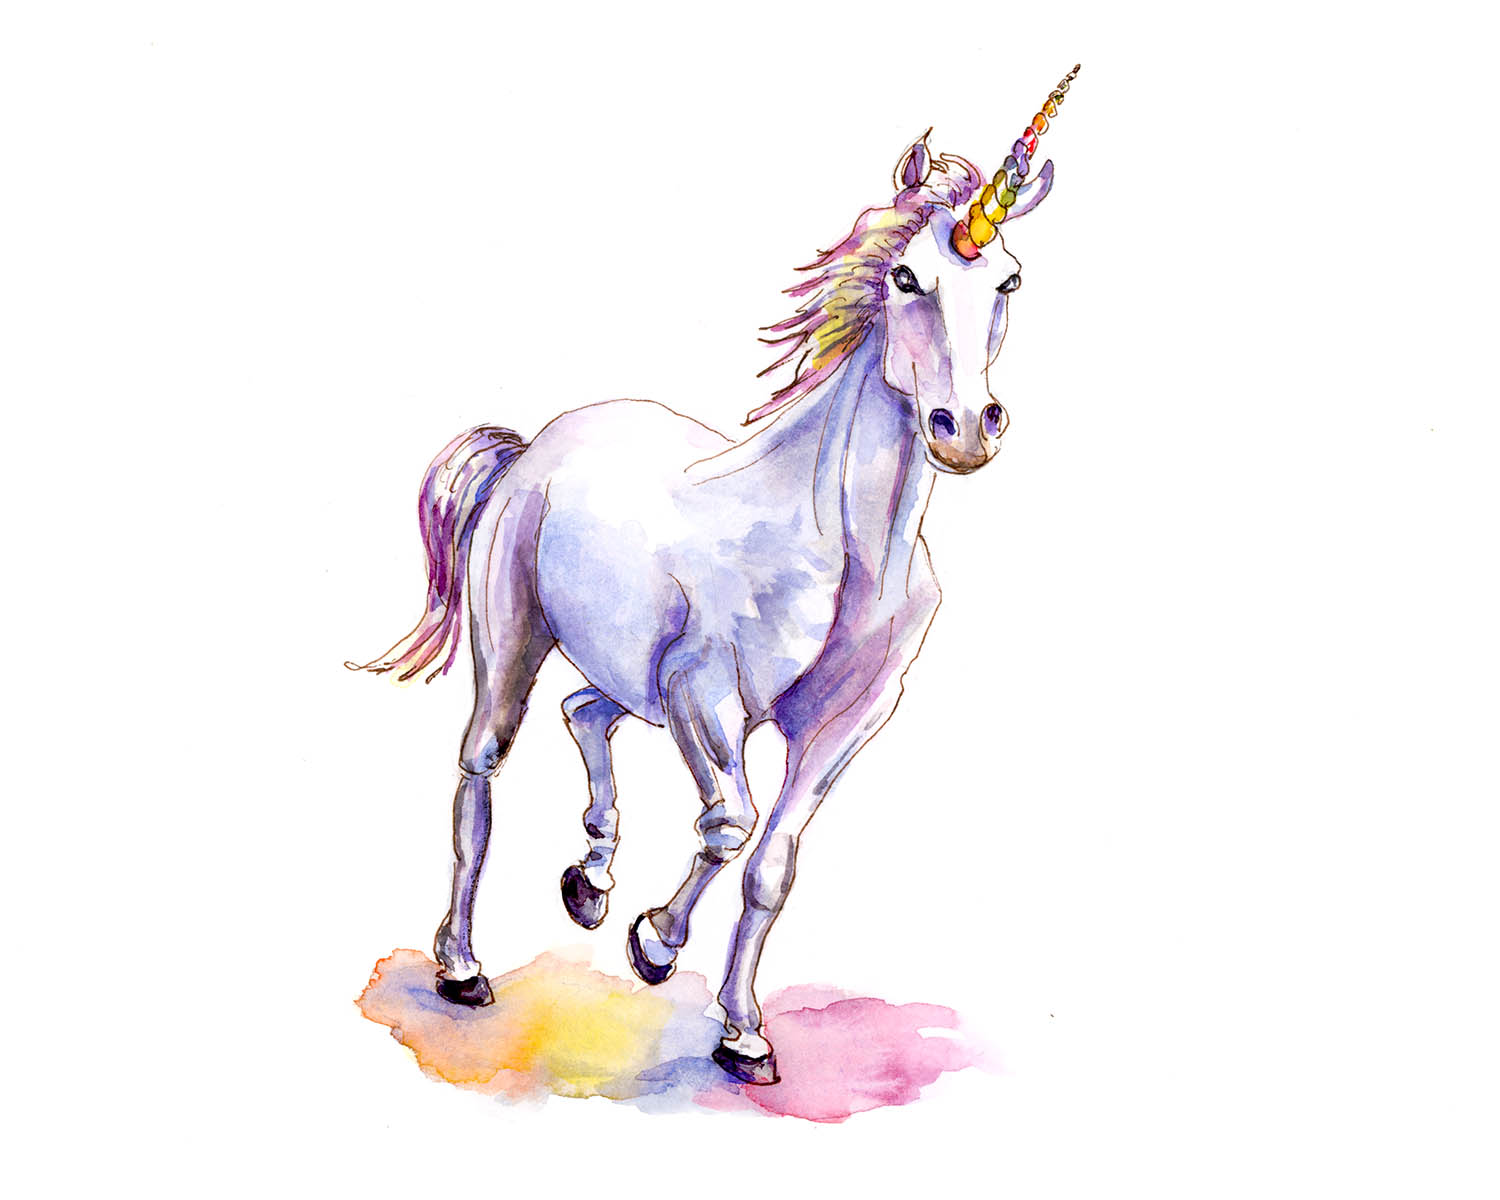 Cool Wallpaper Horse Abstract - Day-30-Unicorn-Watercolor-Illustration  Best Photo Reference_305425.jpg?w\u003d300